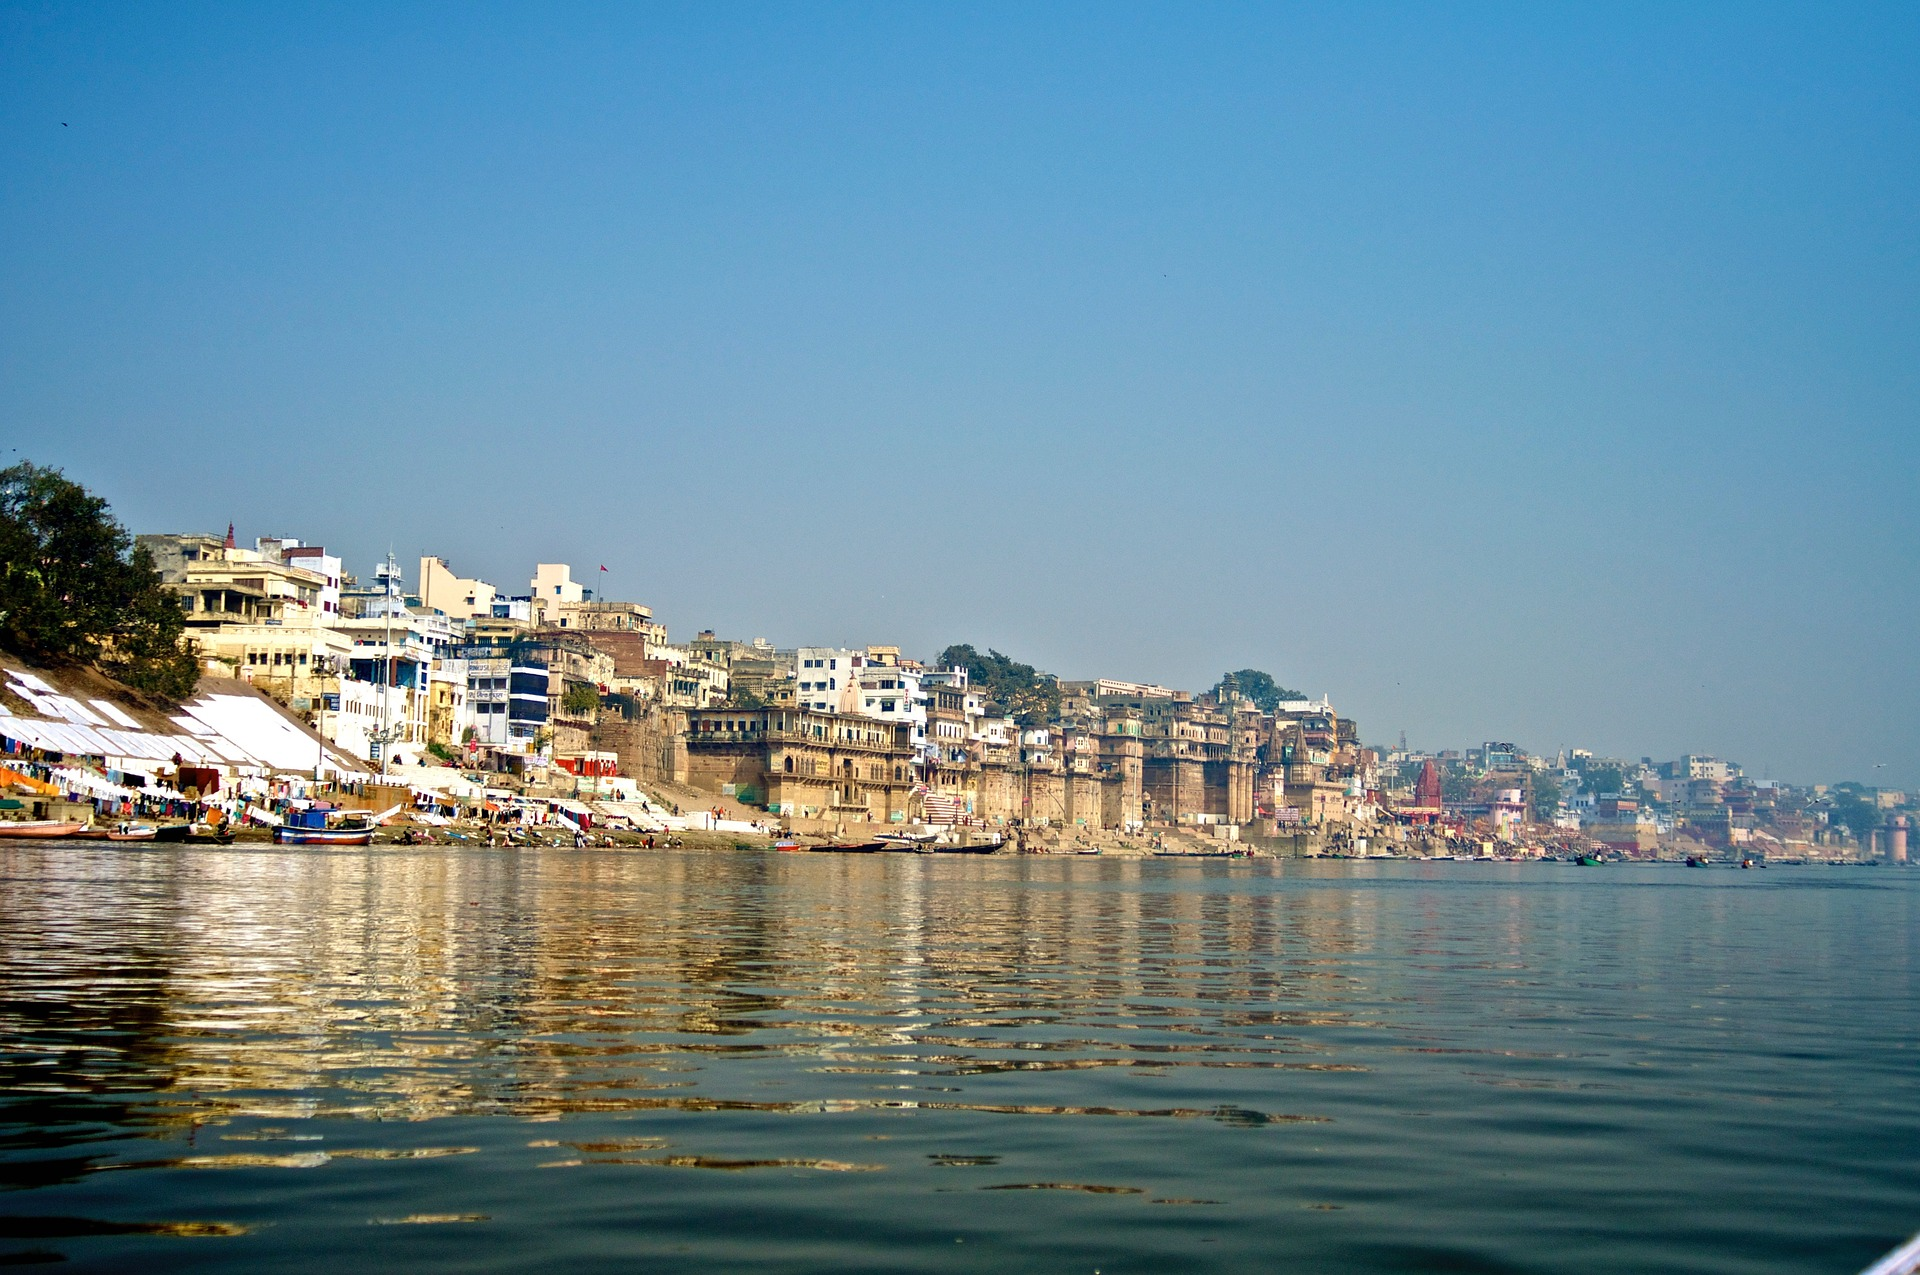 India's Golden Triangle with Varanasi - Varanasi, India